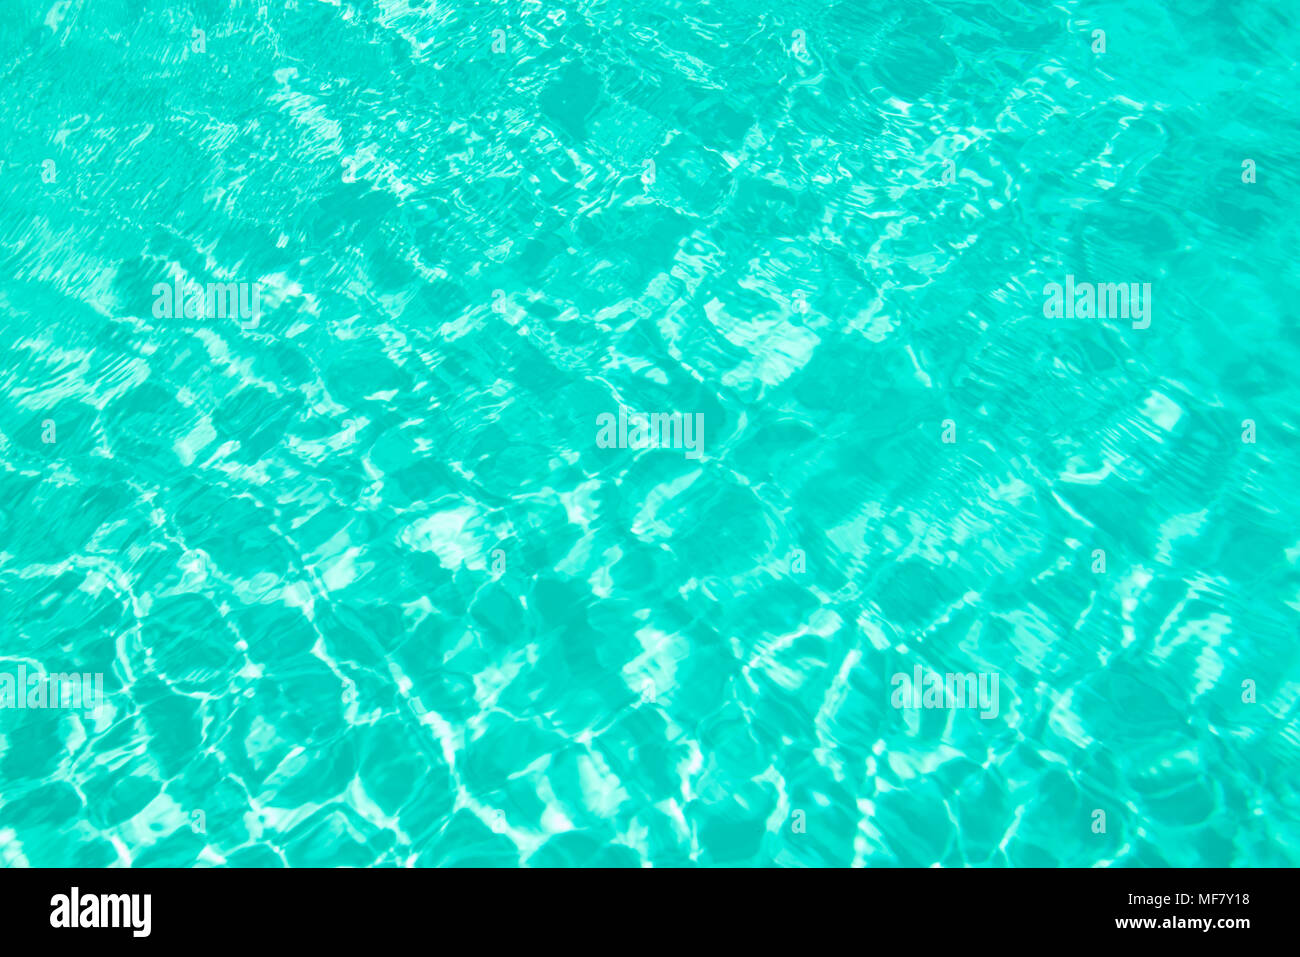 pool water background. Turquoise Blue Ripped Swimming Pool Water Background, Summer Concept Background